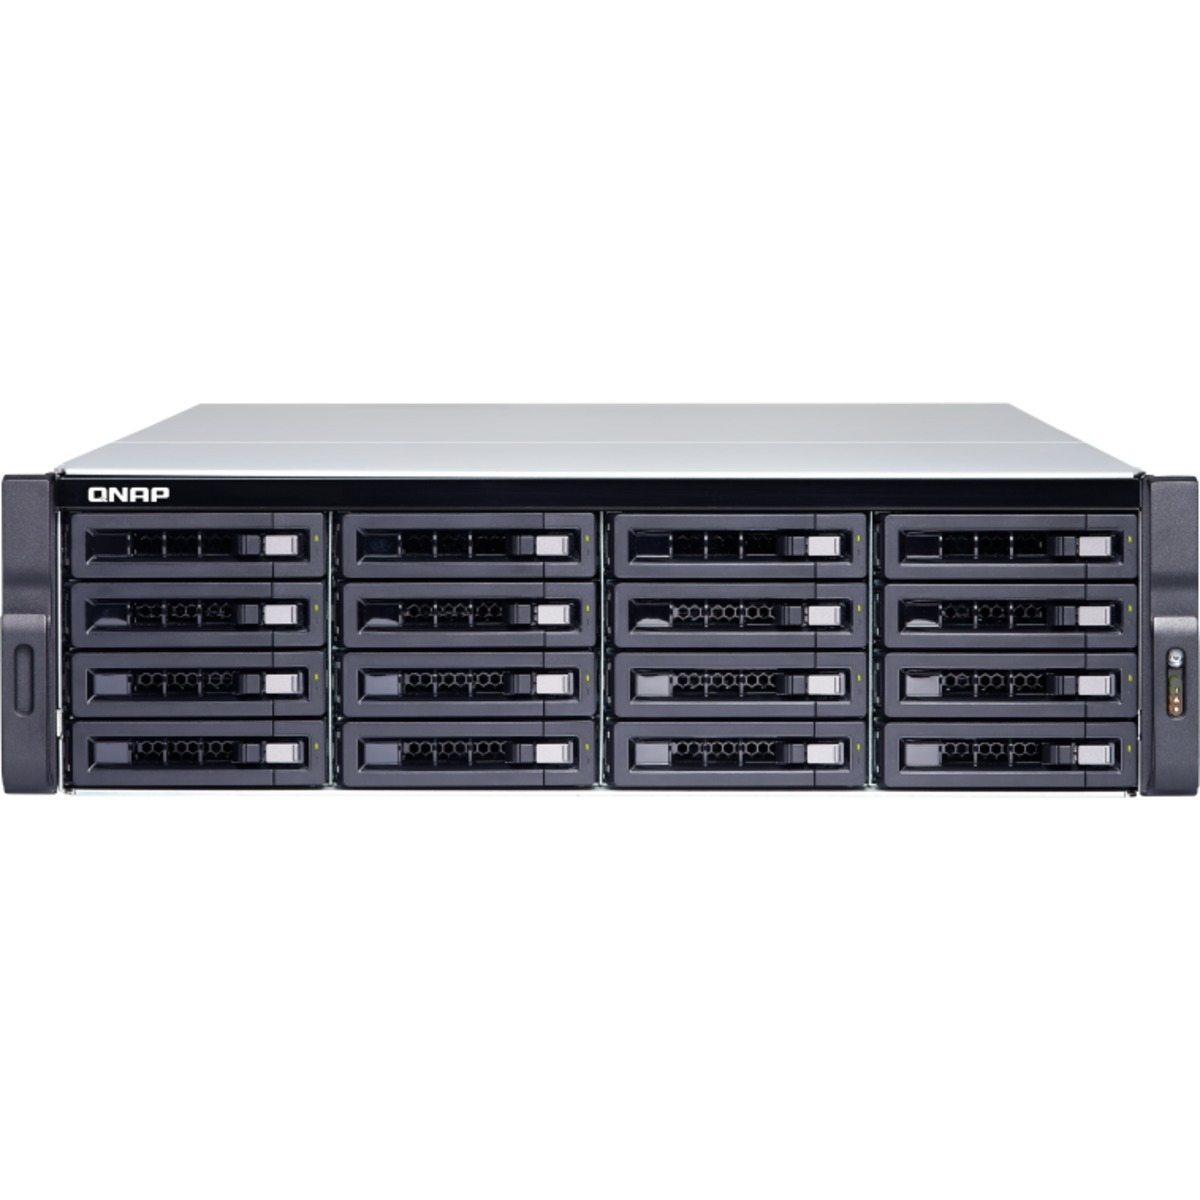 buy $6164 QNAP TS-1683XU-RP 48tb RackMount NAS - Network Attached Storage Device 16x3000gb Toshiba Desktop Series DT01ACA300 3.5 7200rpm SATA 6Gb/s HDD CONSUMER Class Drives Installed - Burn-In Tested - nas headquarters buy network attached storage server device das new raid-5 free shipping usa spring inventory clearance sale happening now TS-1683XU-RP